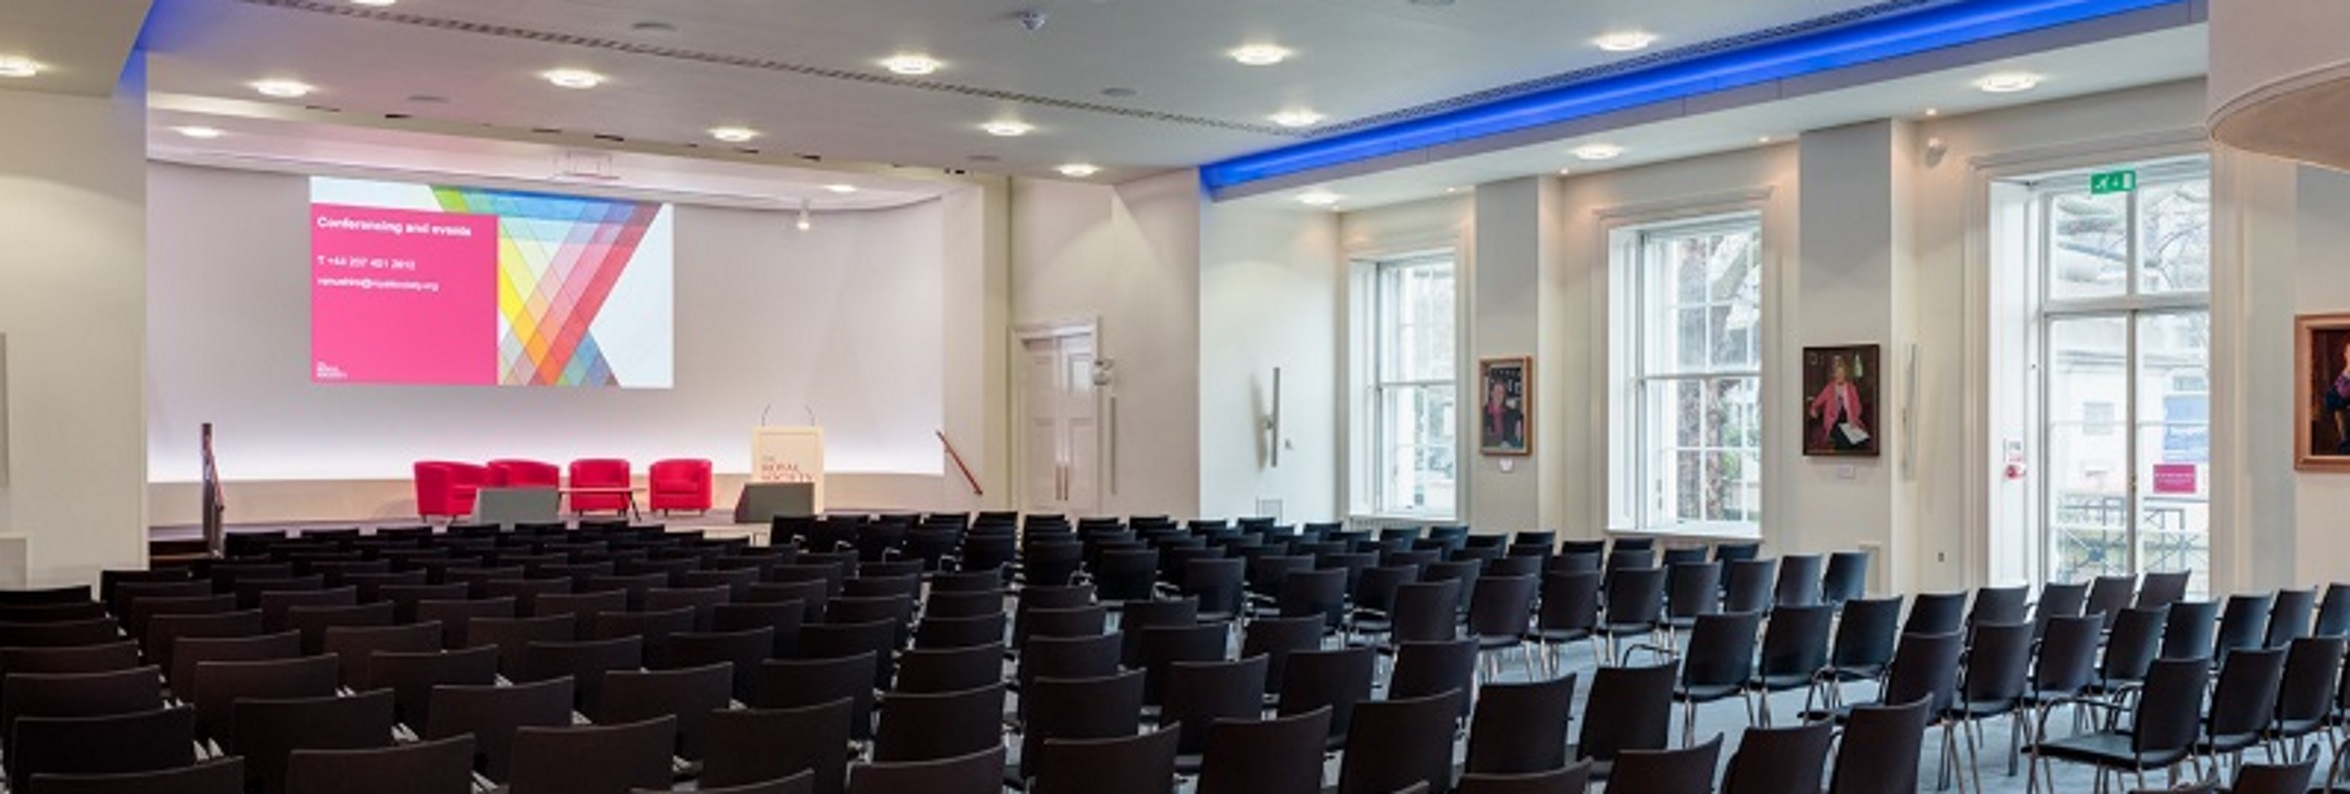 Wellcome Trust Lecture Hall